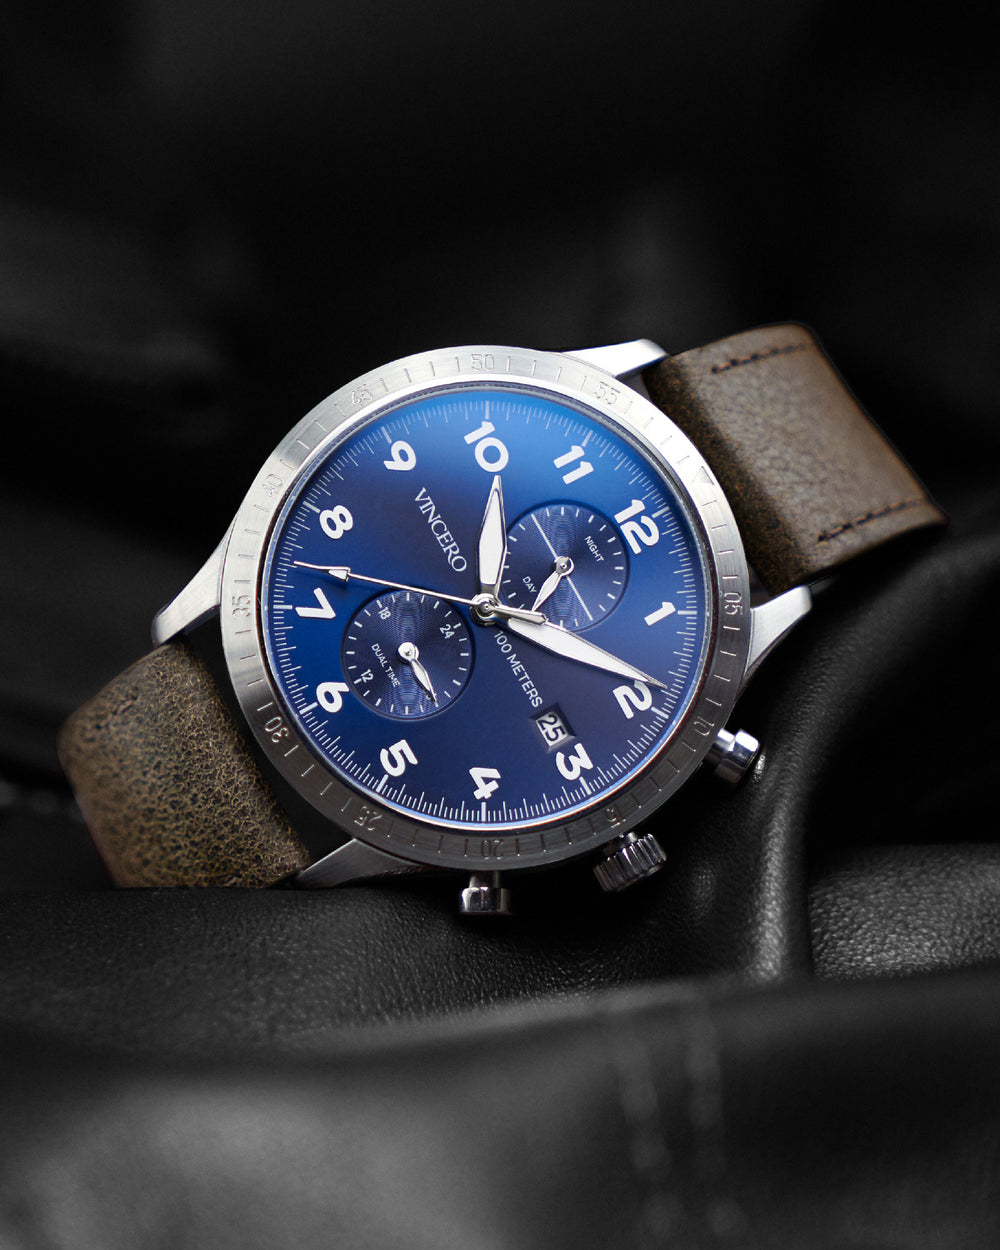 Altitude Brown Italian Leather Strap Blue Watch Face Silver Case Clasp White Accents